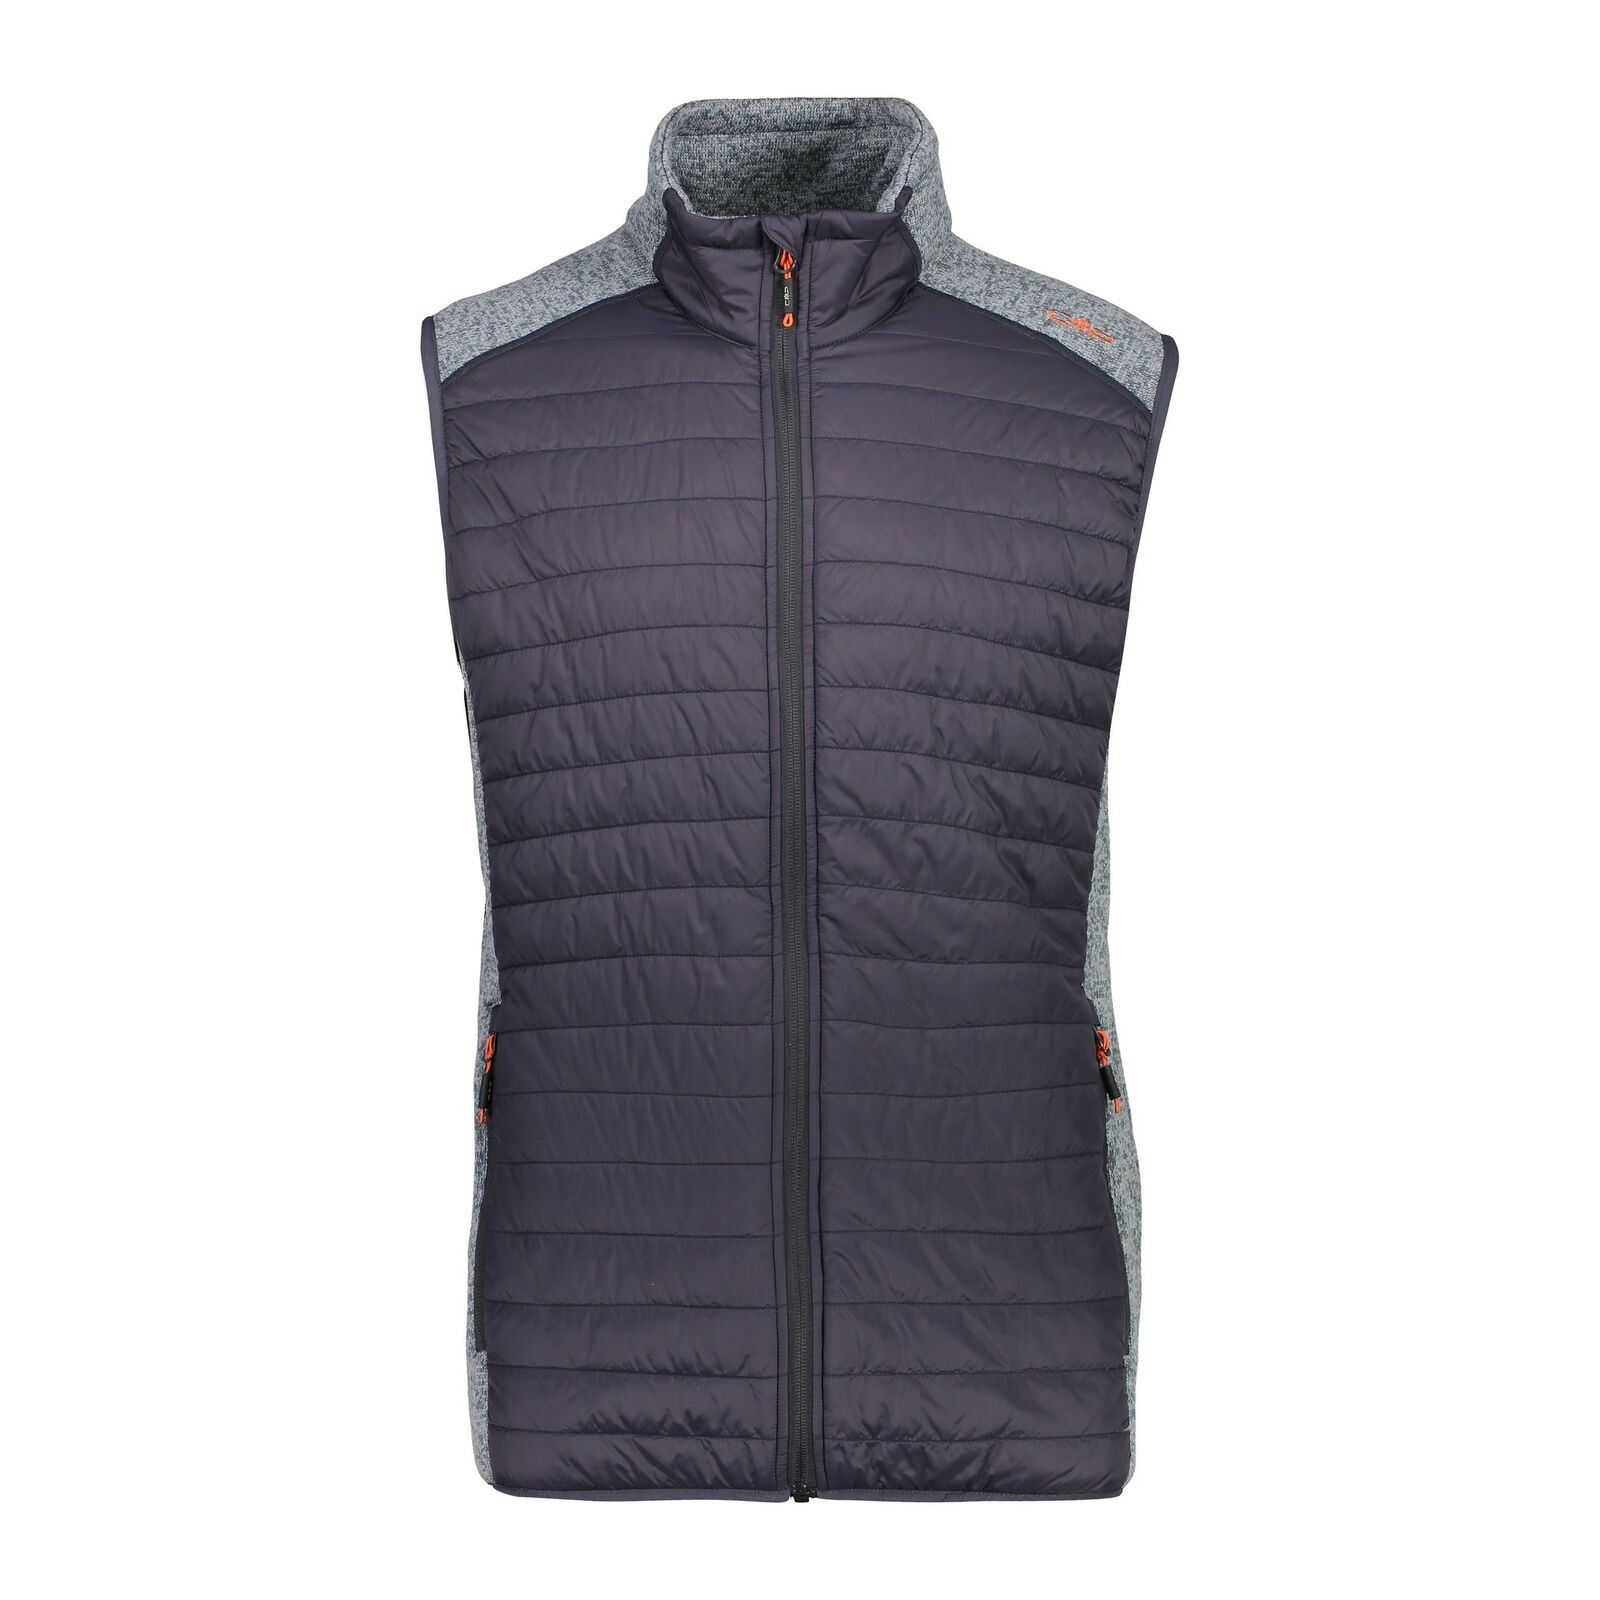 CMP hybridweste vest man waistcoat  Hybrid Grey Breathable heating insulation  a lot of concessions